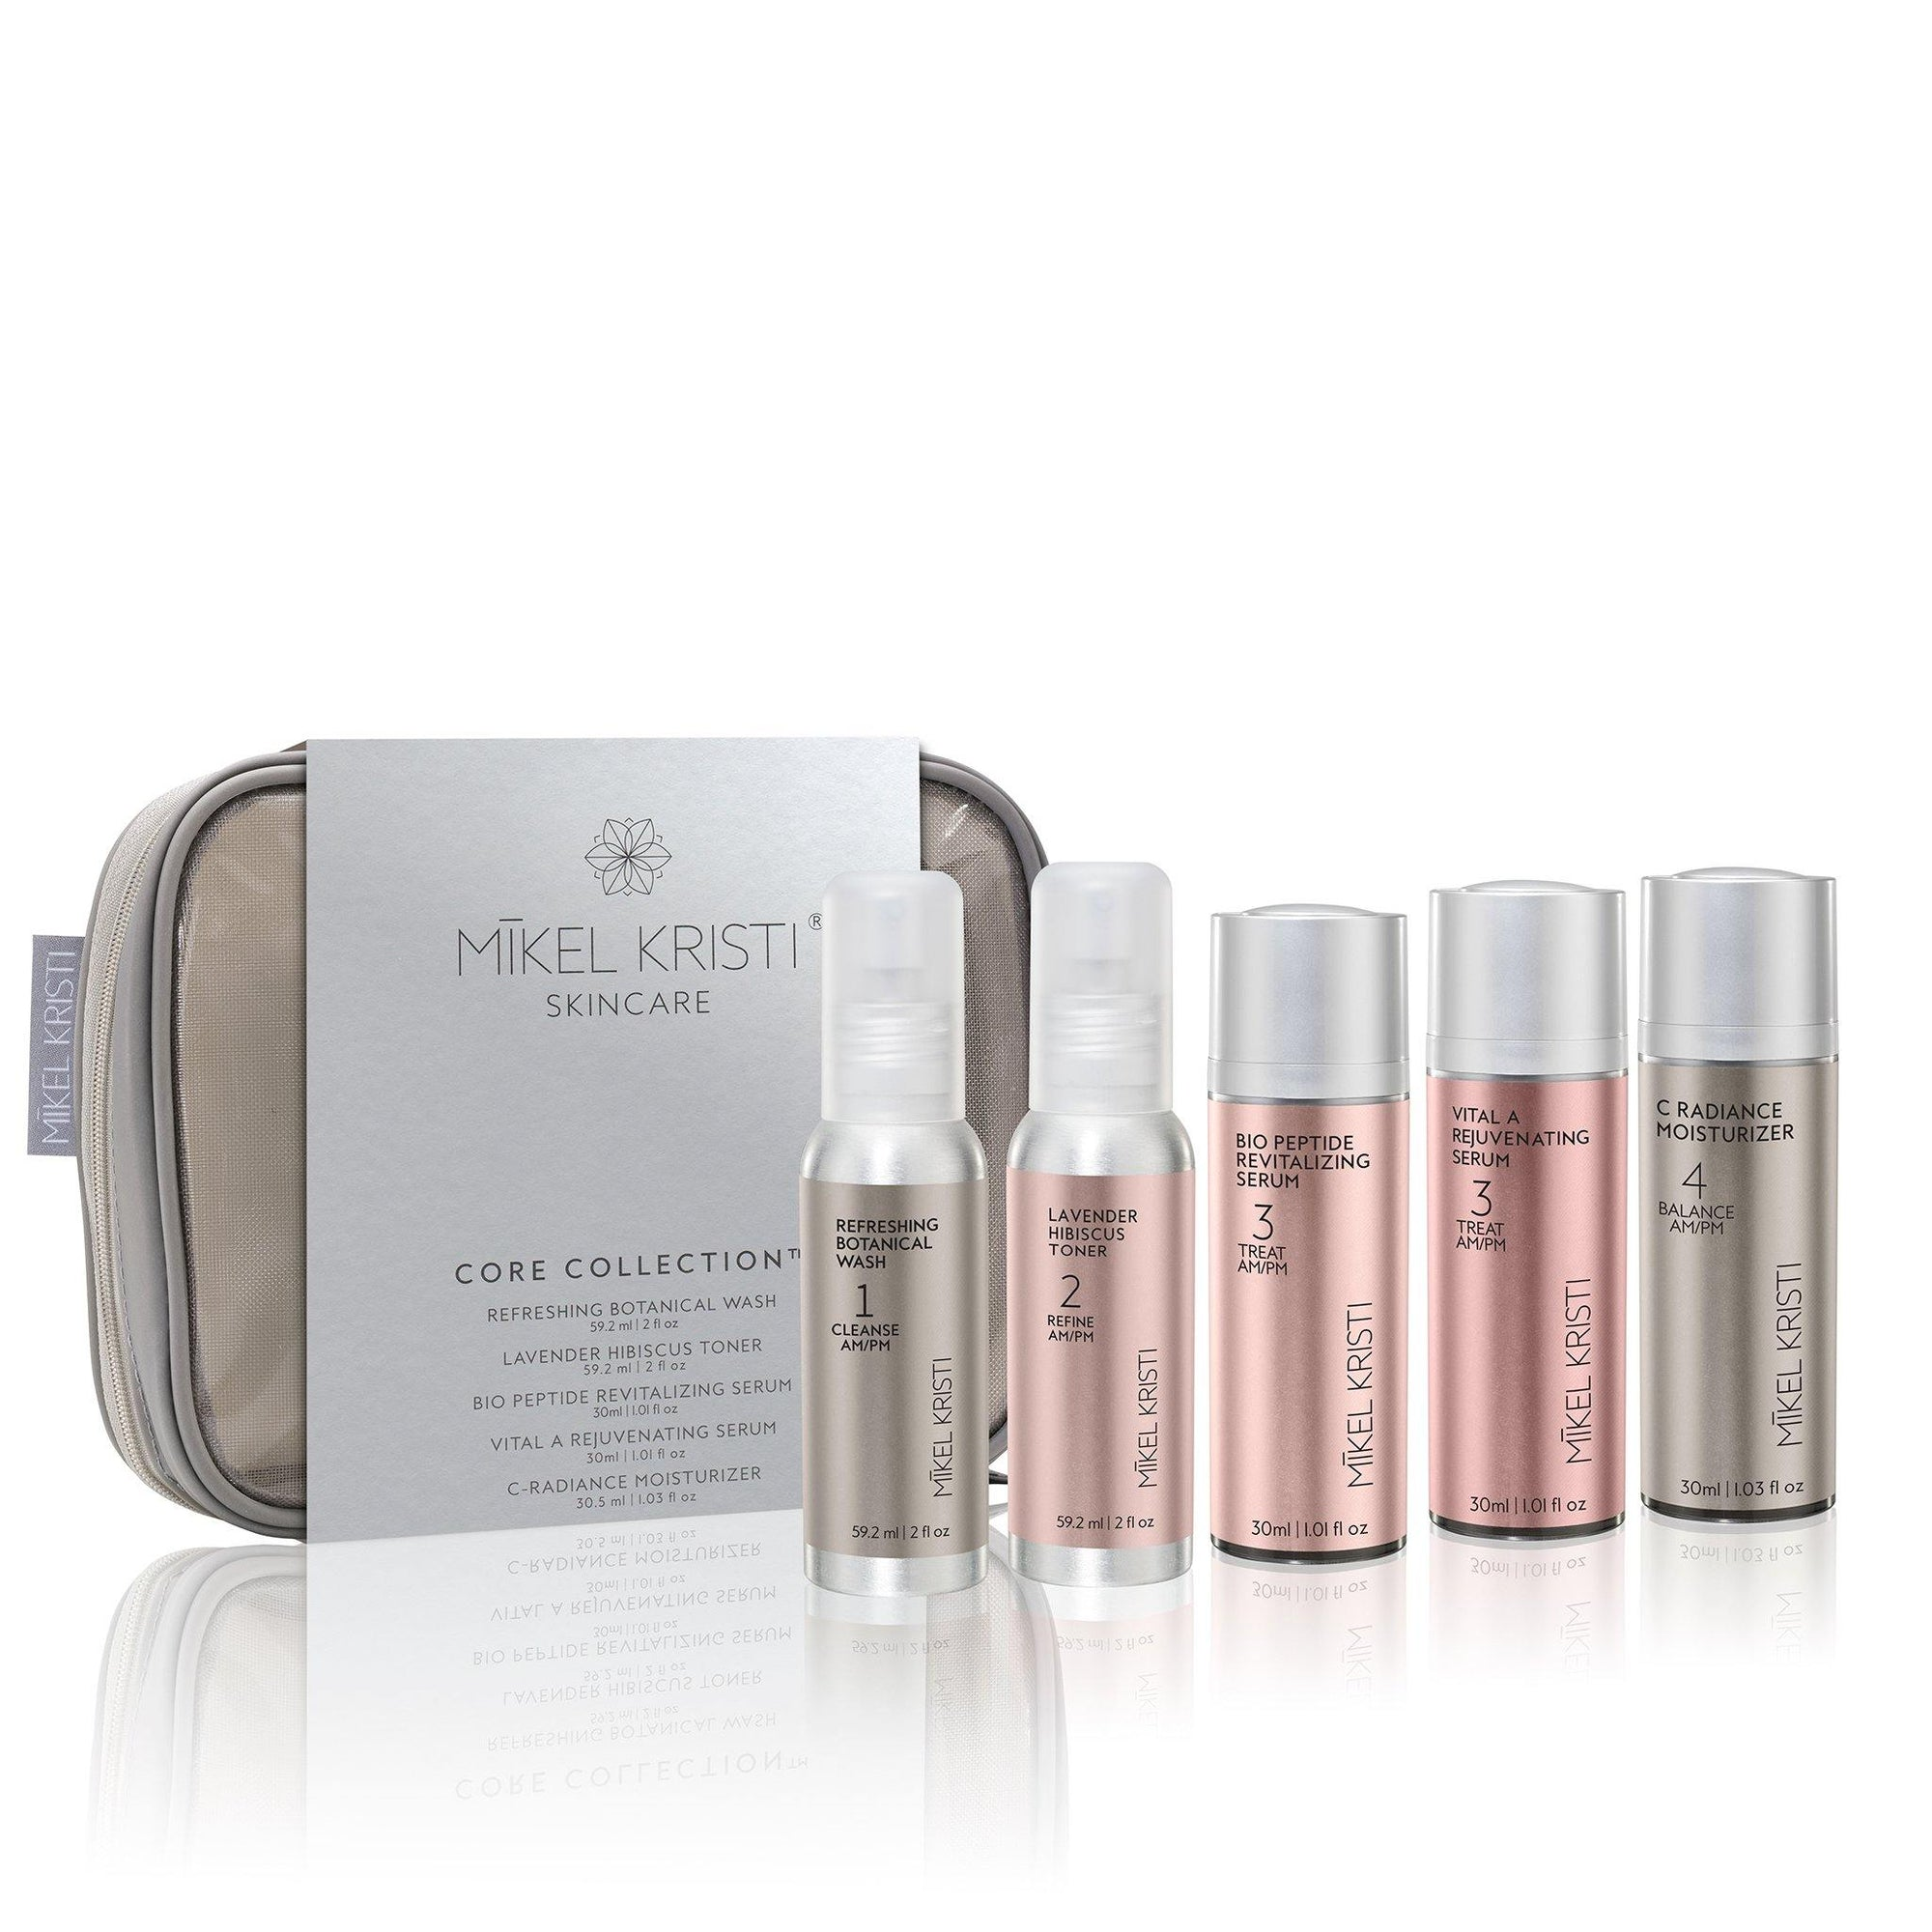 Mikel Kristi Skincare Core Collection Daily Skincare  Regimen